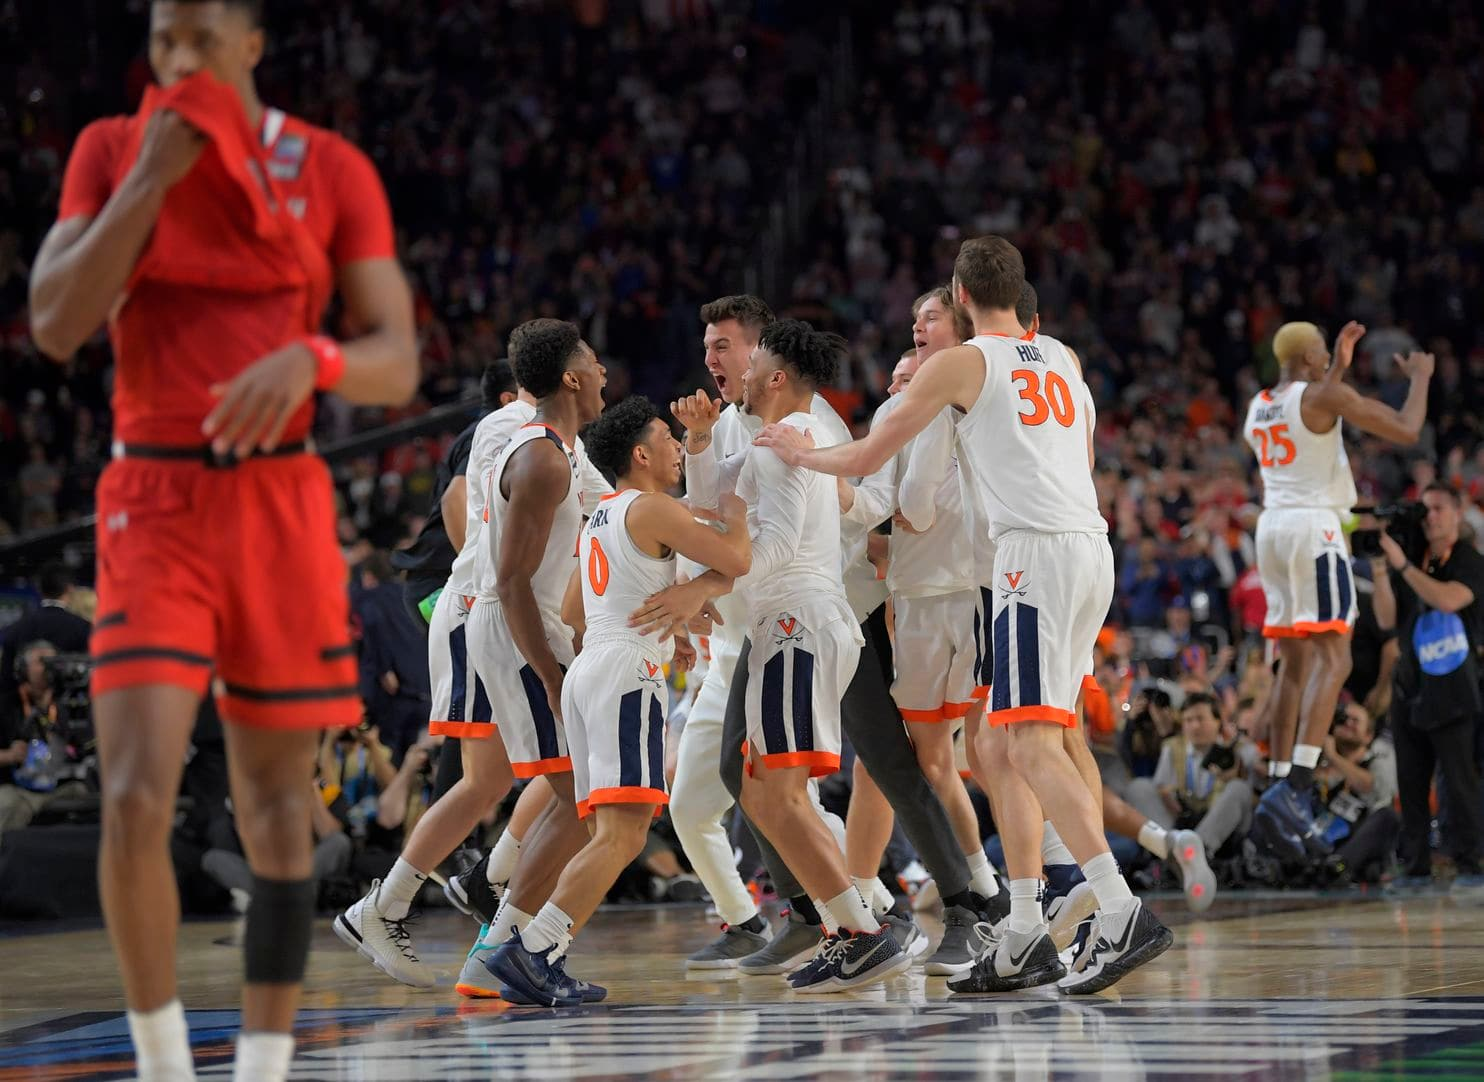 A picture of Virginia after beating Texas Tech to clinch the national championship.